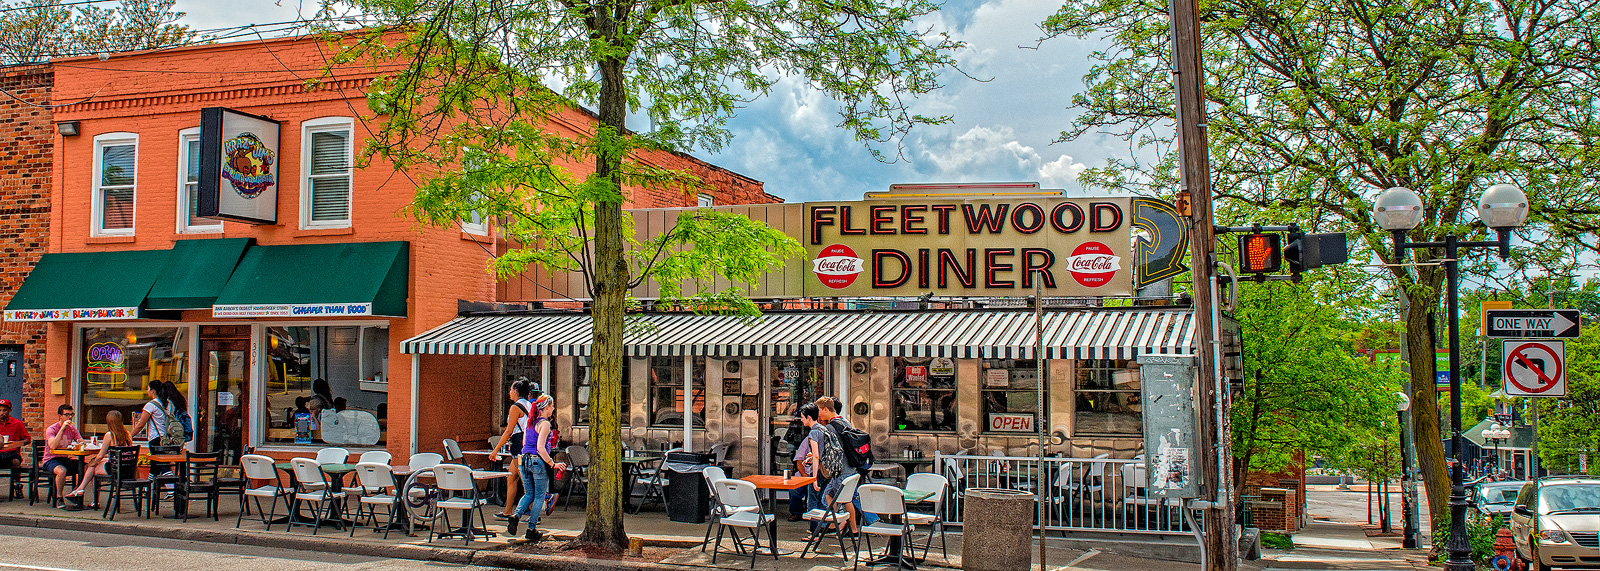 The Fleetwood Diner - Ann Arbor